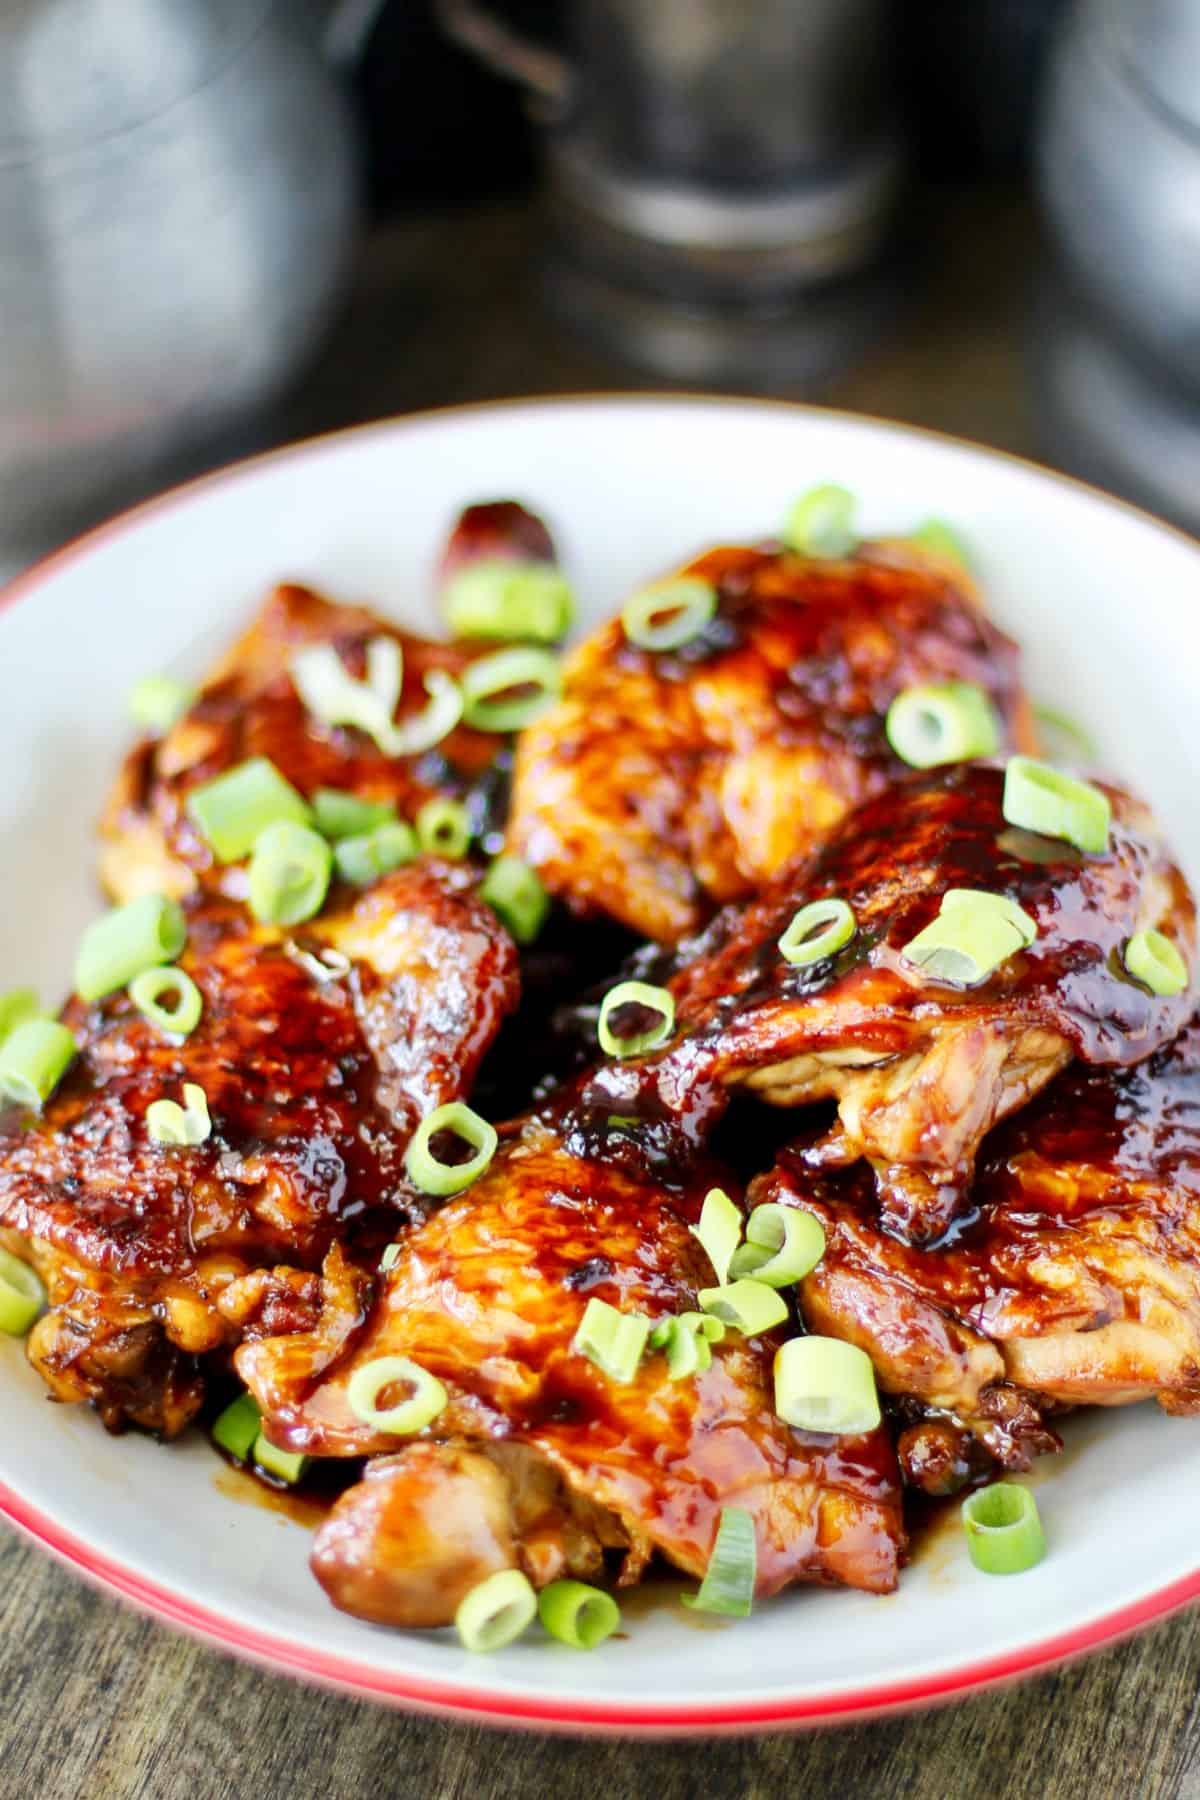 Garlic and Ginger Caramel Chicken Thighs in a bowl.